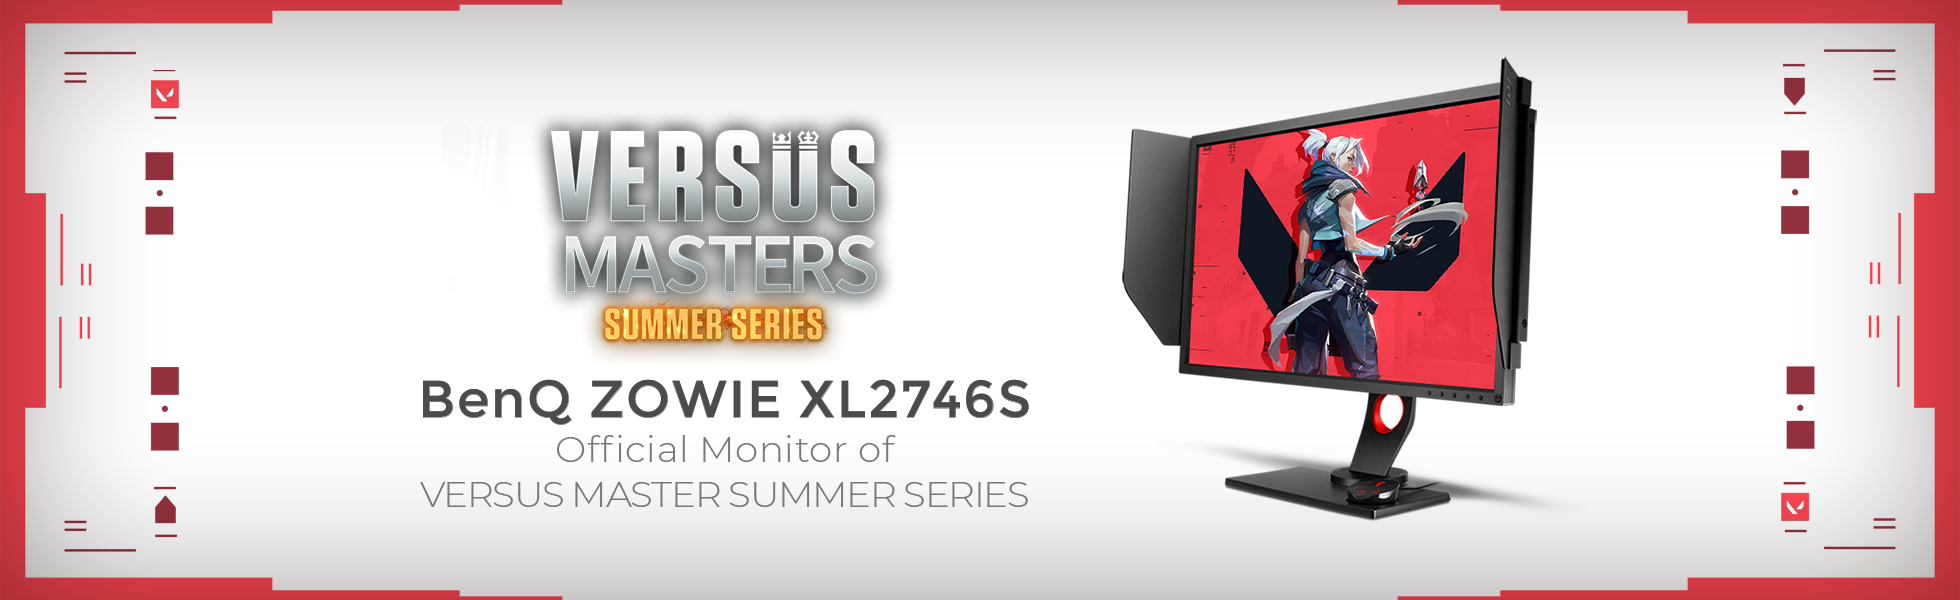 BenQ ZOWIE XL2746S with 240Hz and DyAc+ Technology - the best 27inch 240Hz gaming monitor